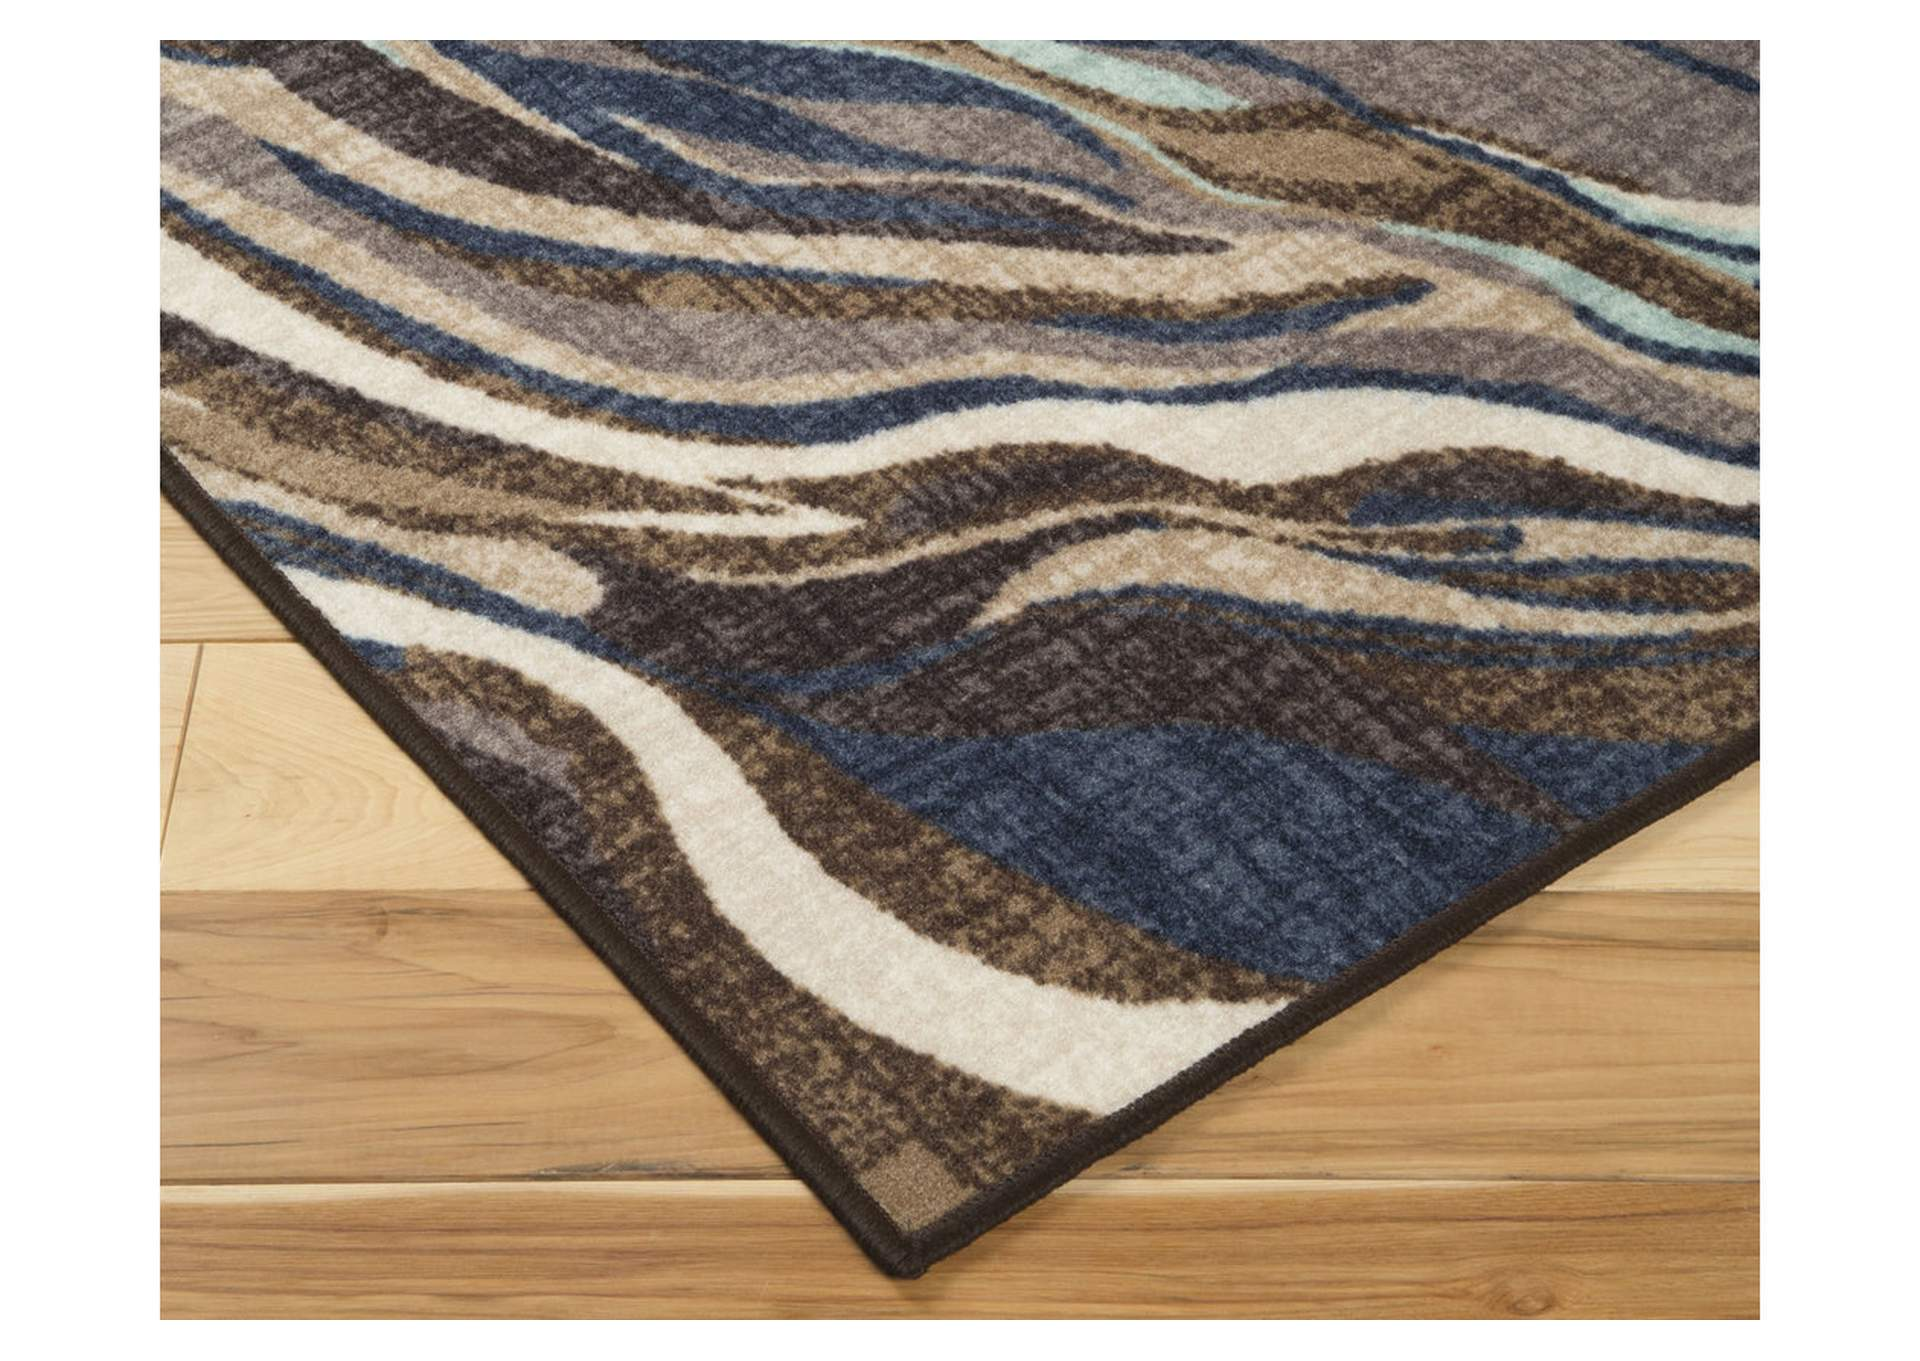 Jochebed Blue/Brown Medium Rug,Signature Design By Ashley